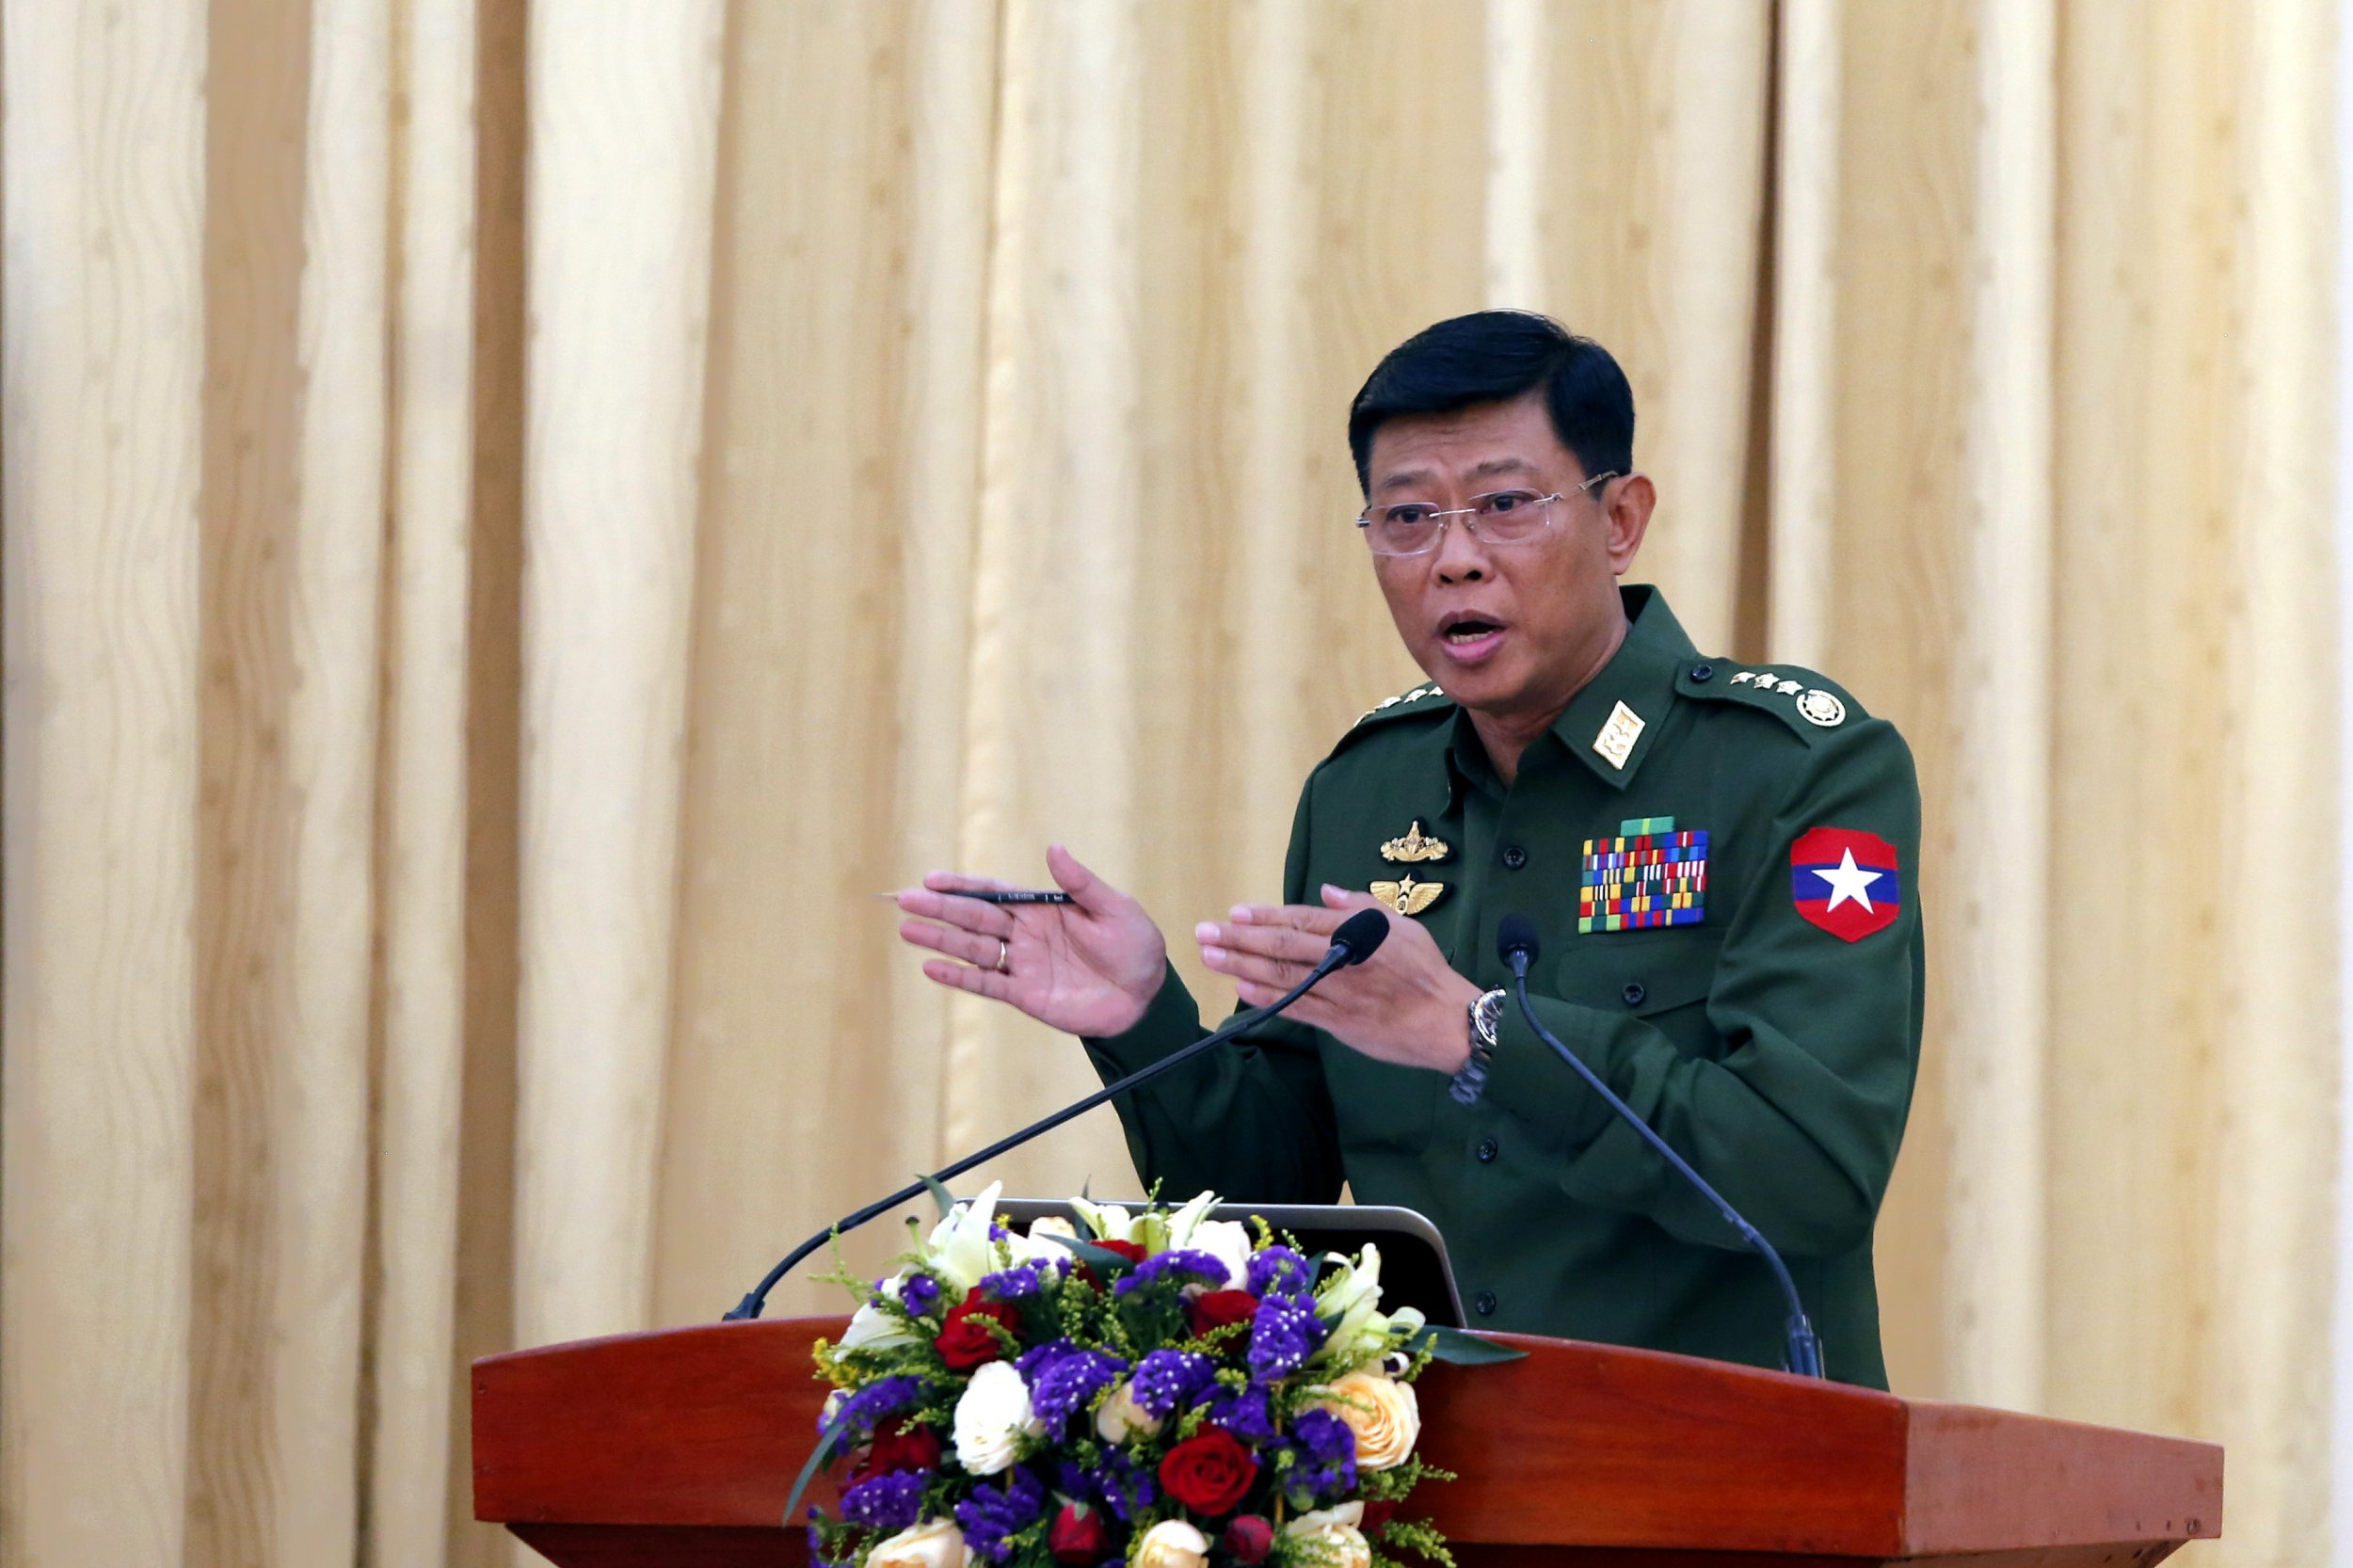 Myanmar's Chief of General Staff (Army,Navy and Air) Lieutenant General Mya Tun Oo